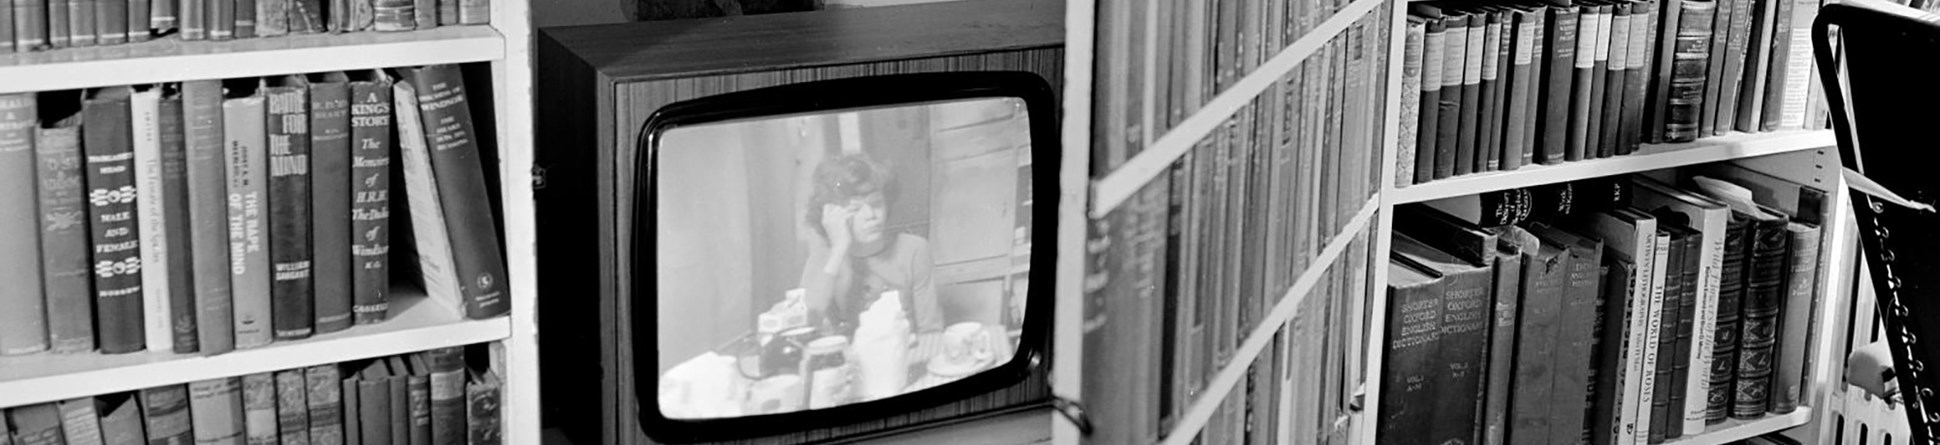 Black and white photo of a television in a bookcase